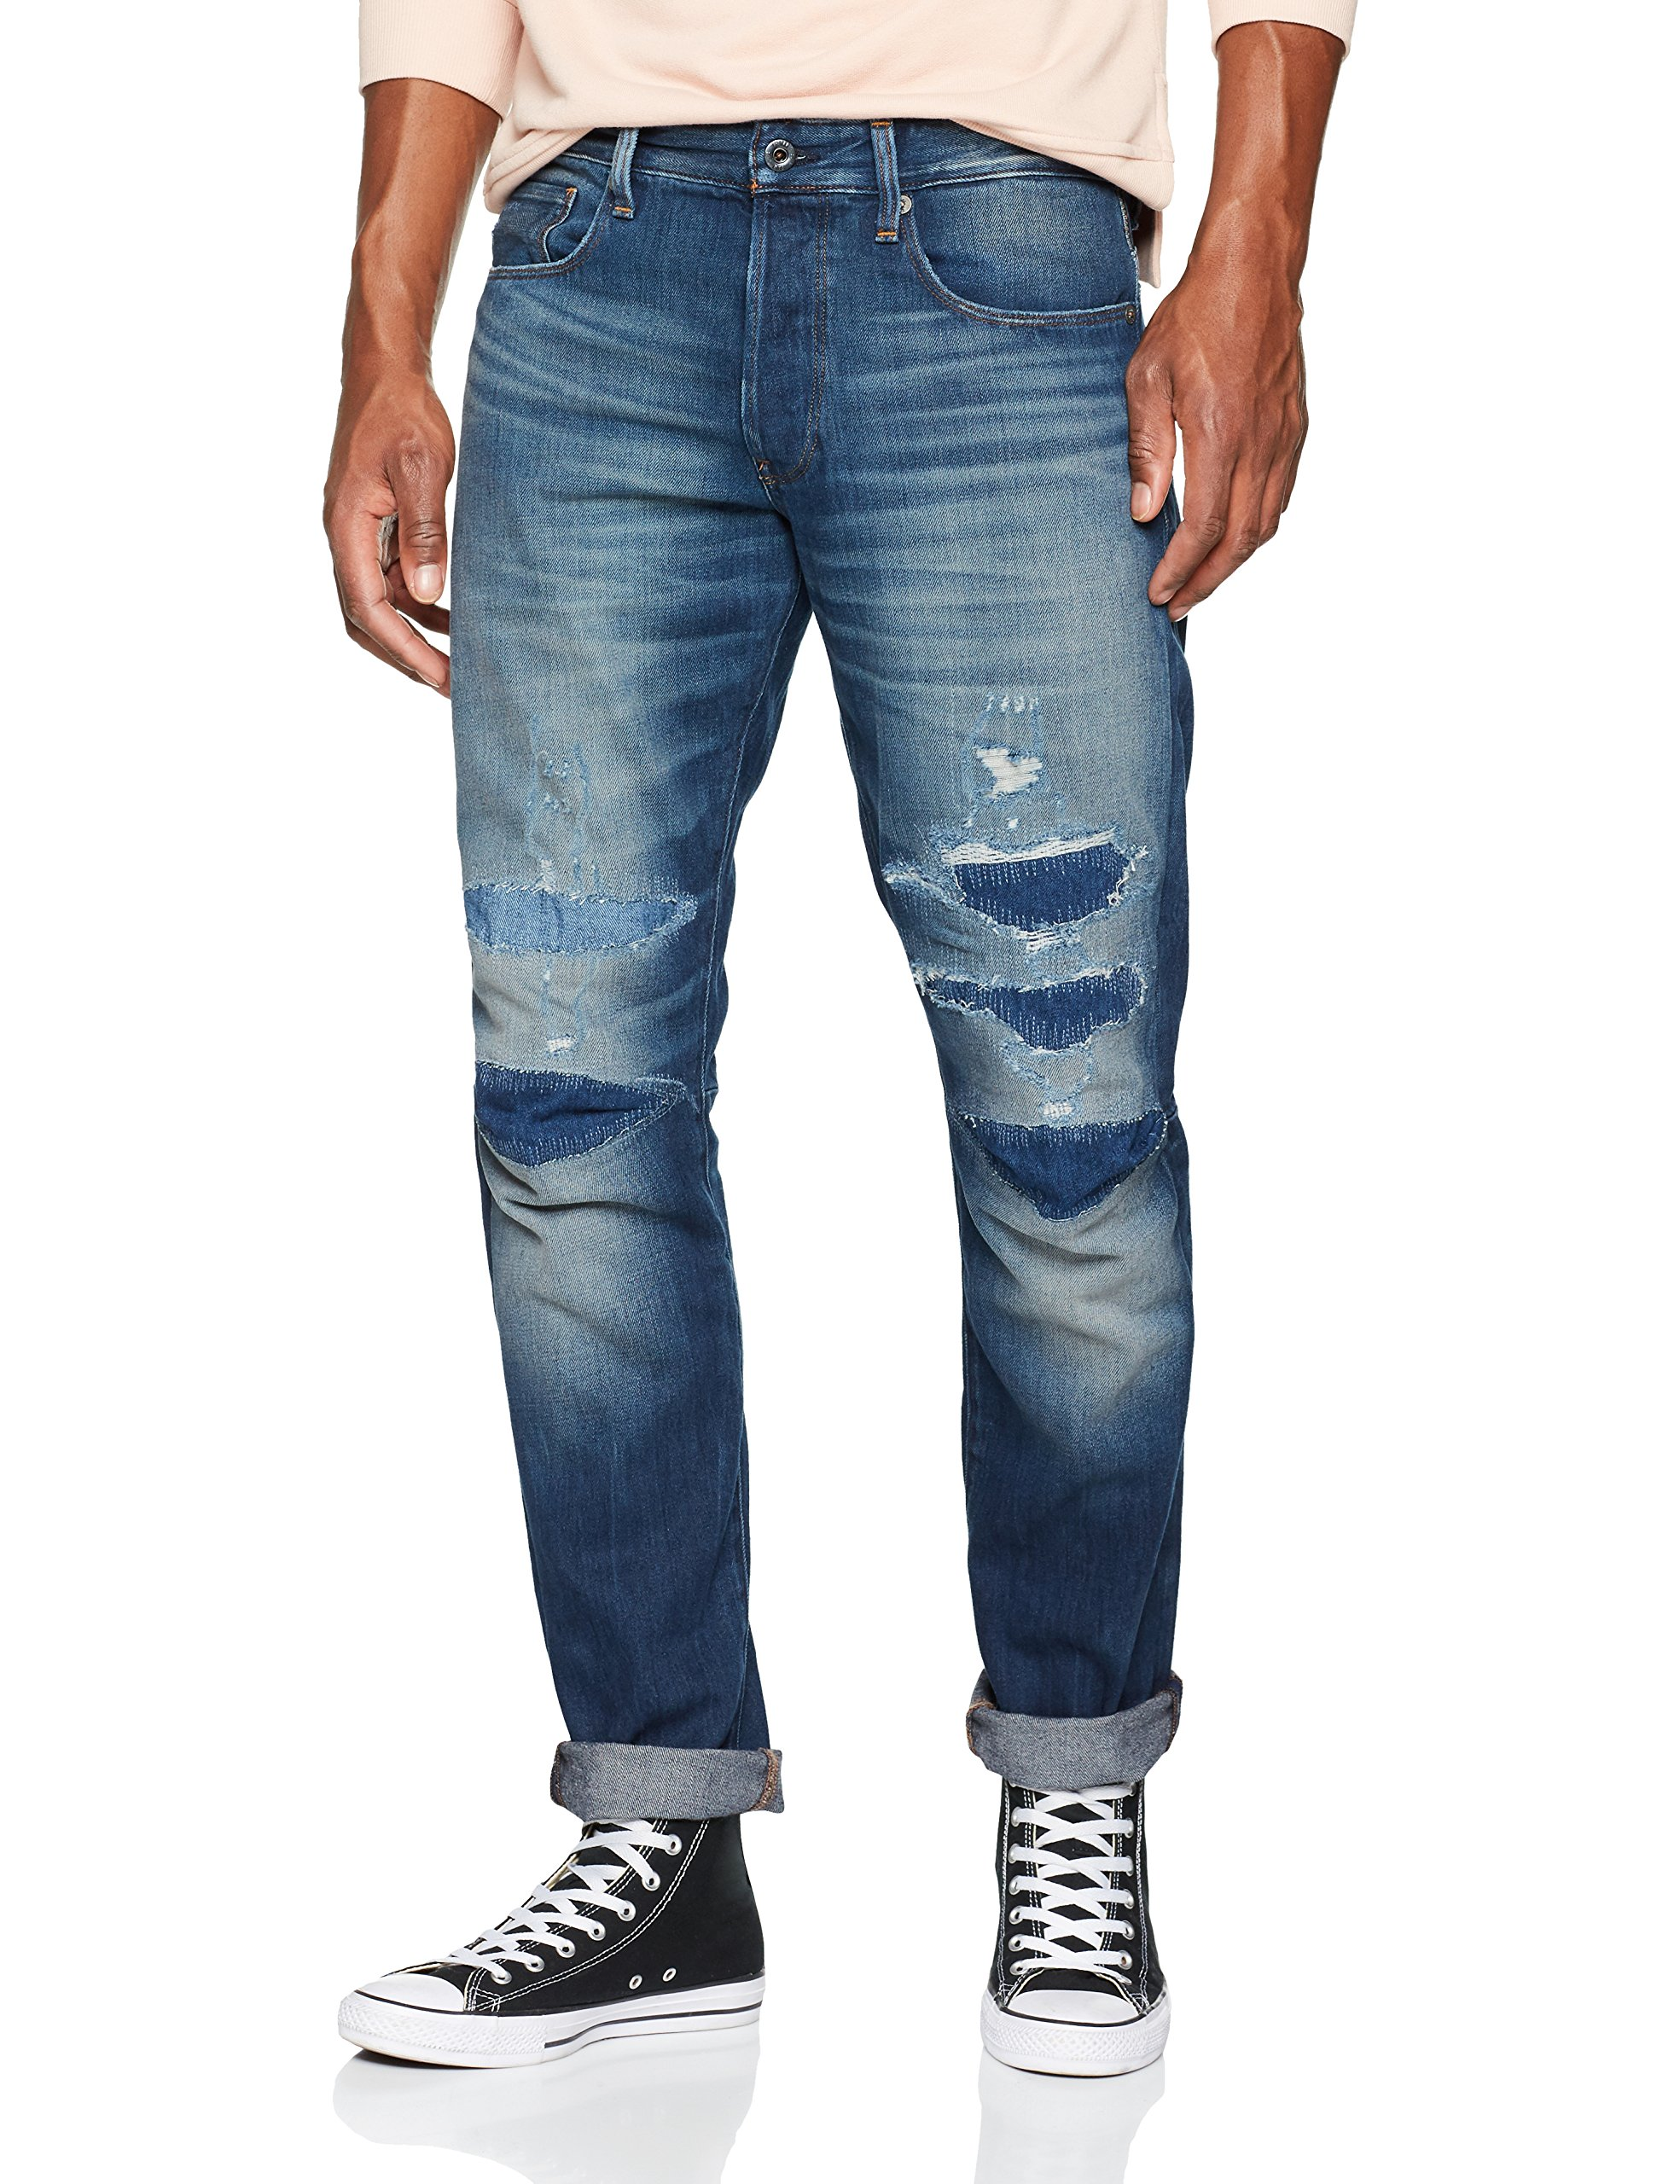 Tapered JeansBleumedium star Homme Raw G 3301 3d Aged 9169 Restored 921534w32l hsQrBtdCxo